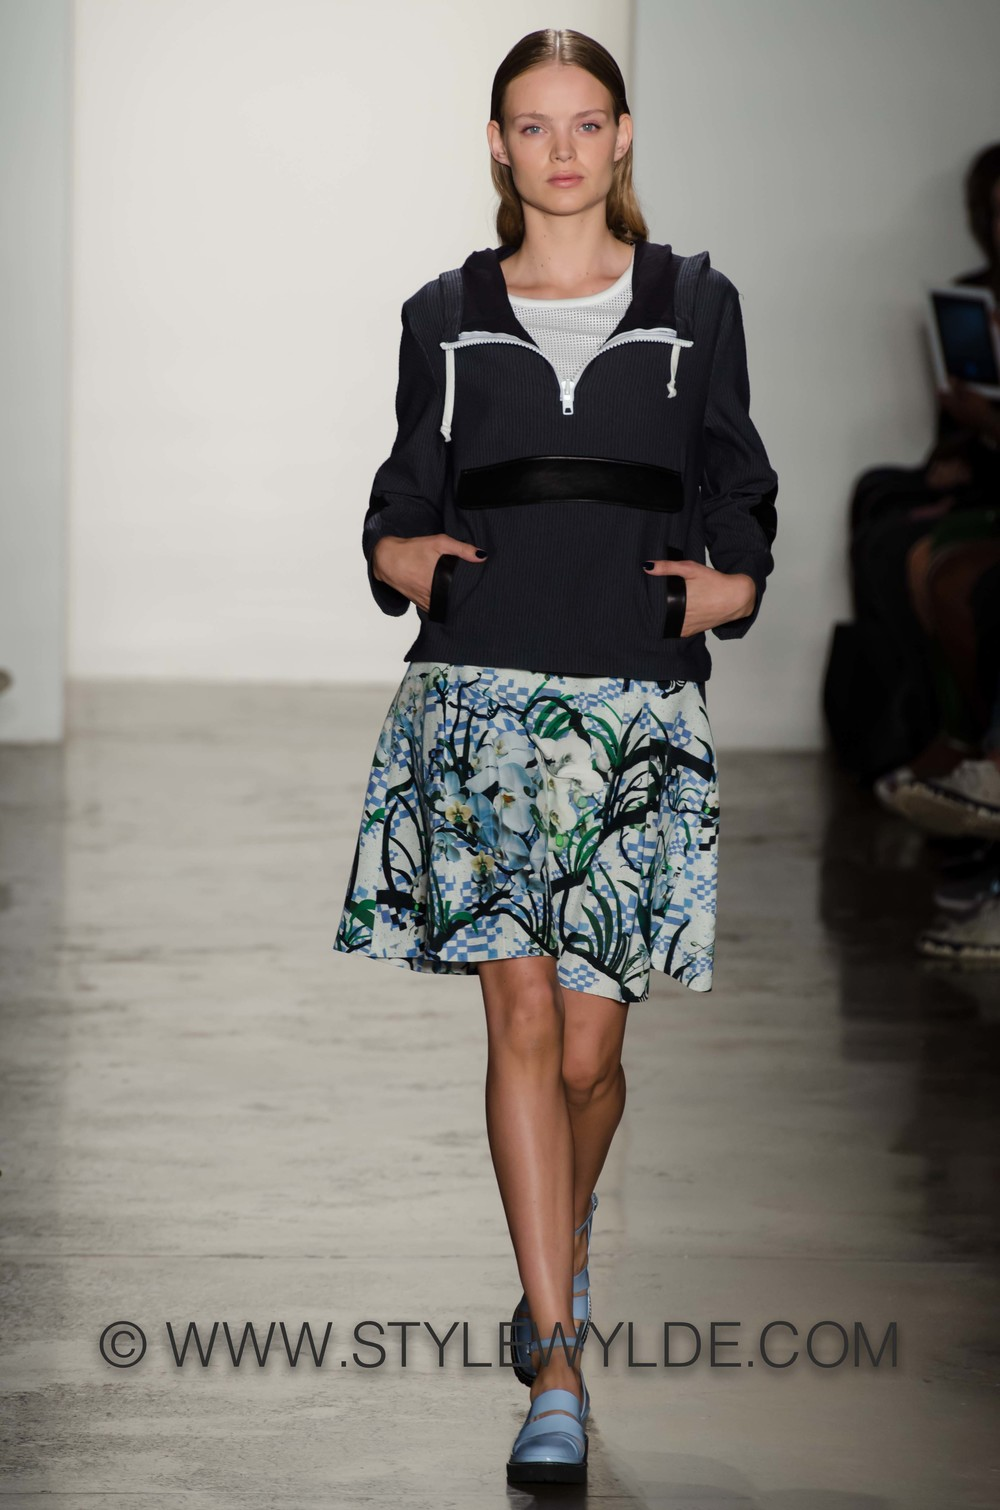 stylewylde_timo_weiland_gallery_ss2014-29.jpg